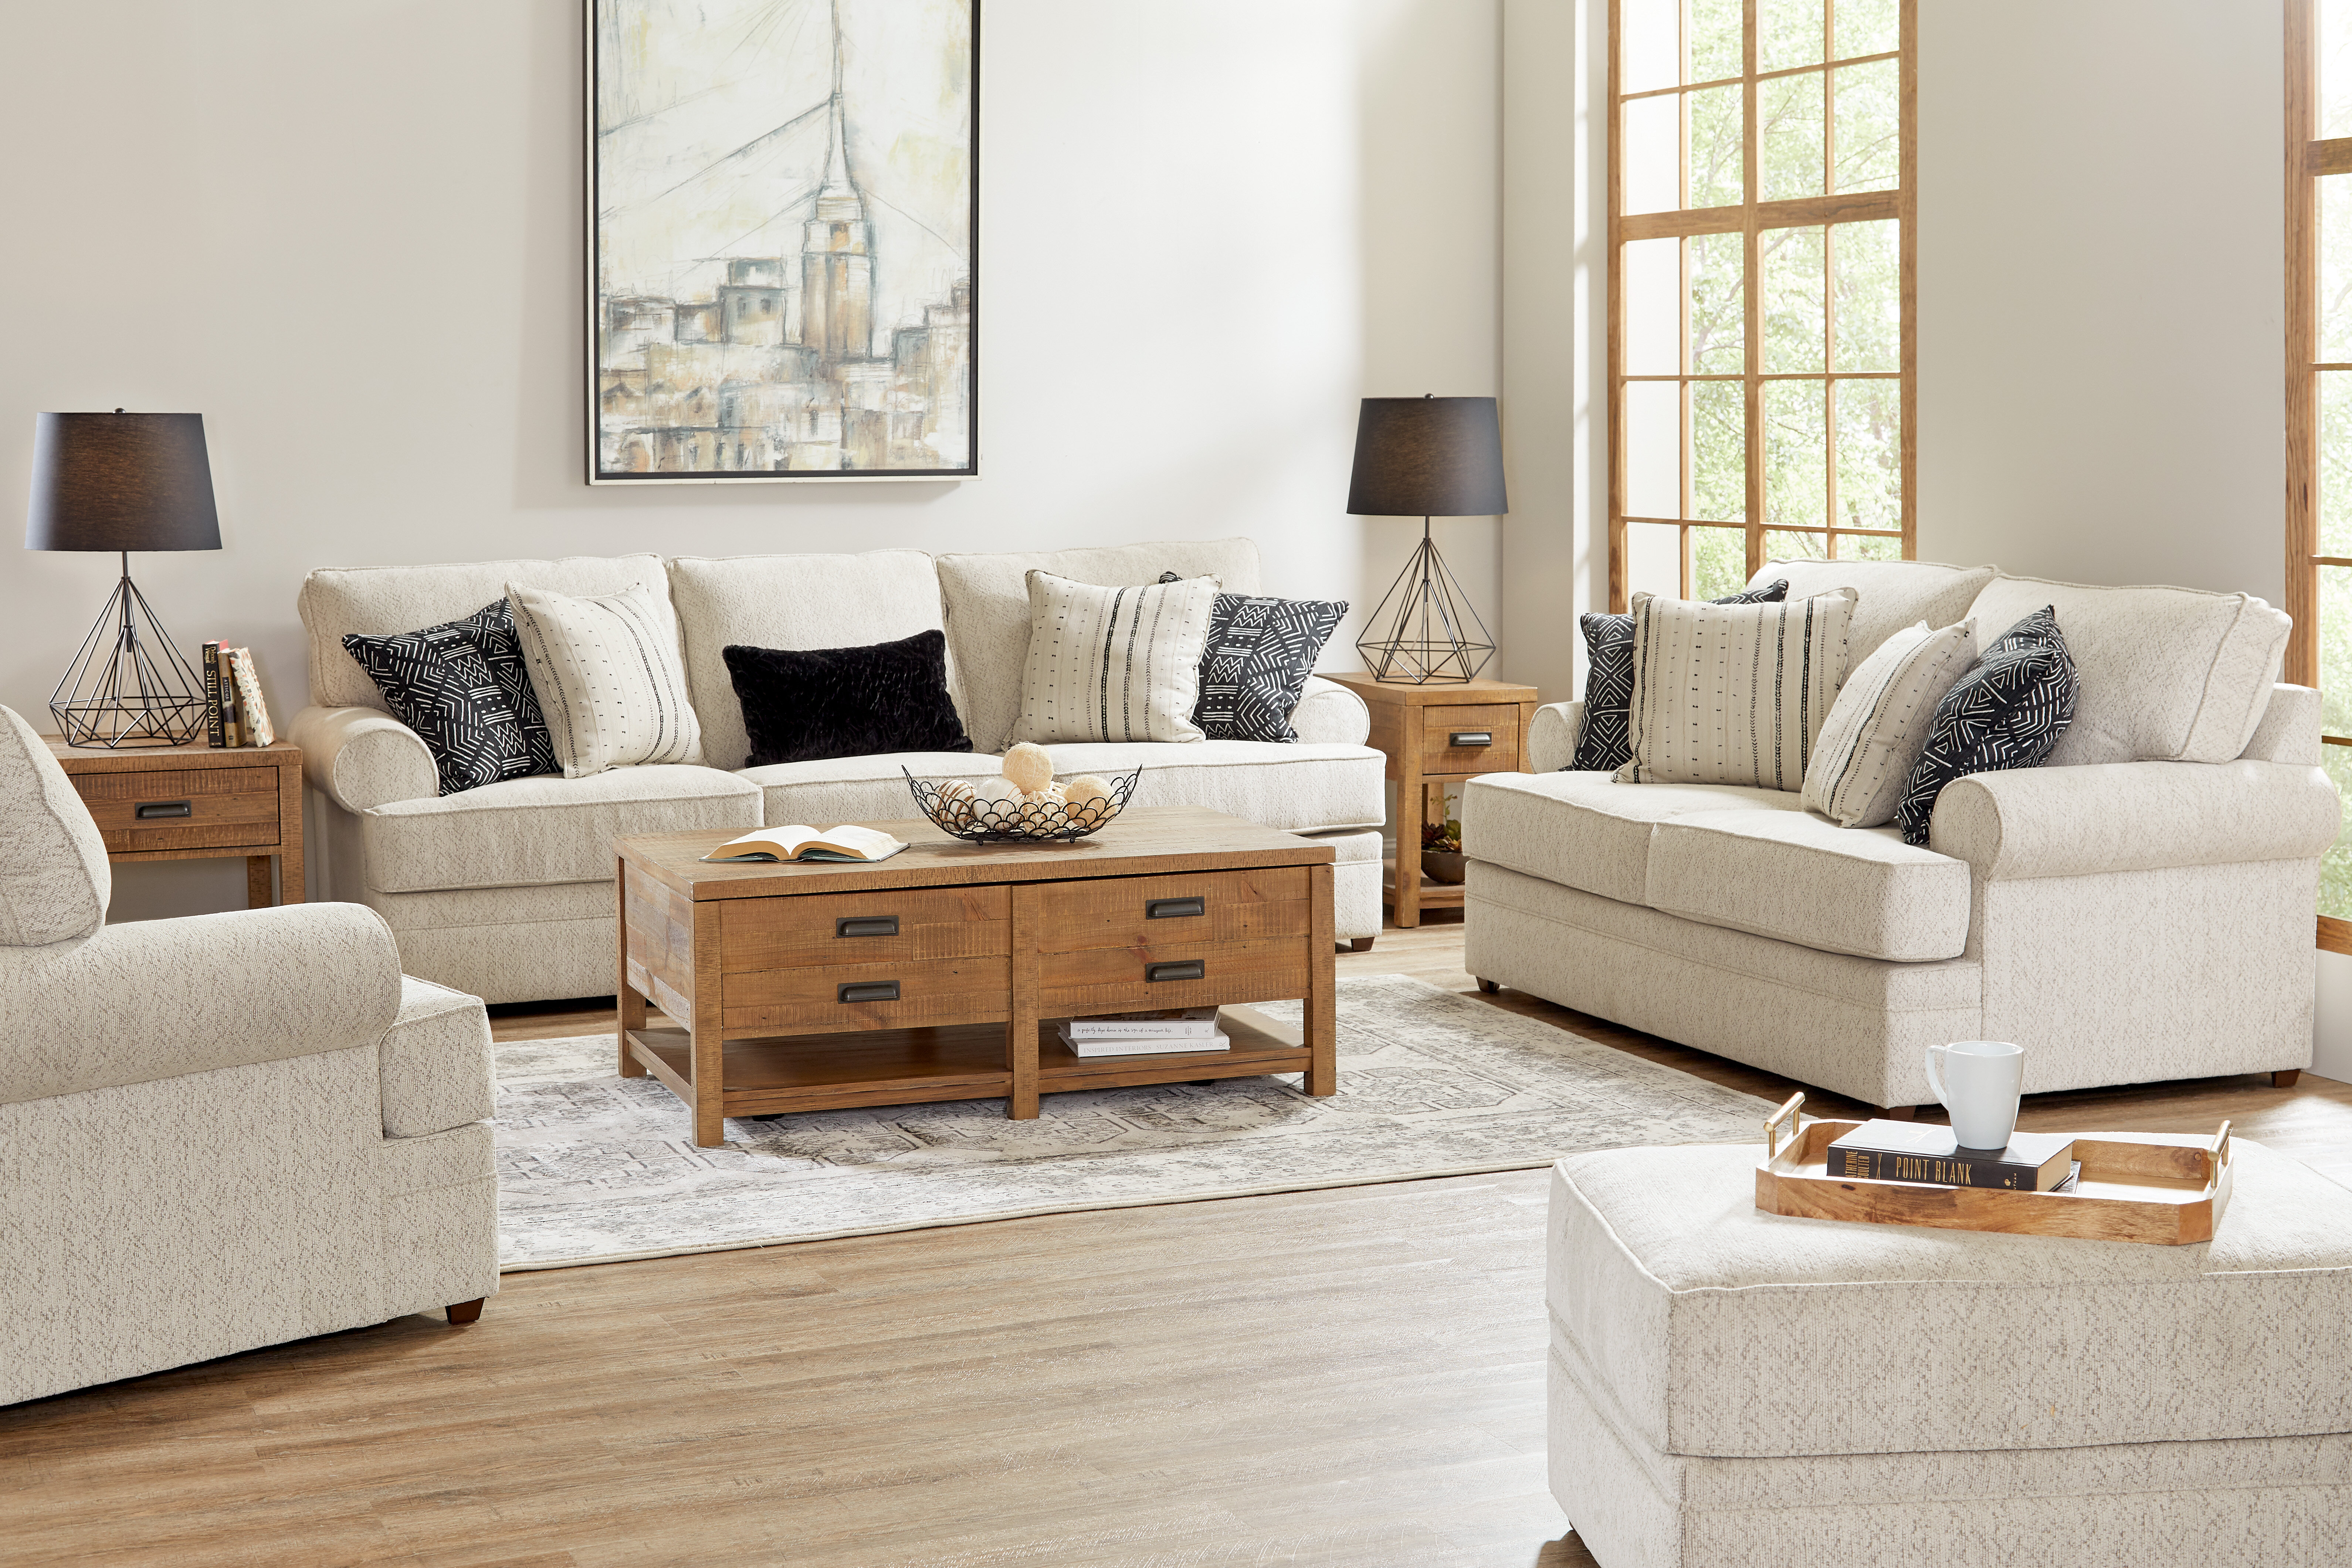 Update Your Space With These 13 Family Room Decorating Ideas | Wayfair